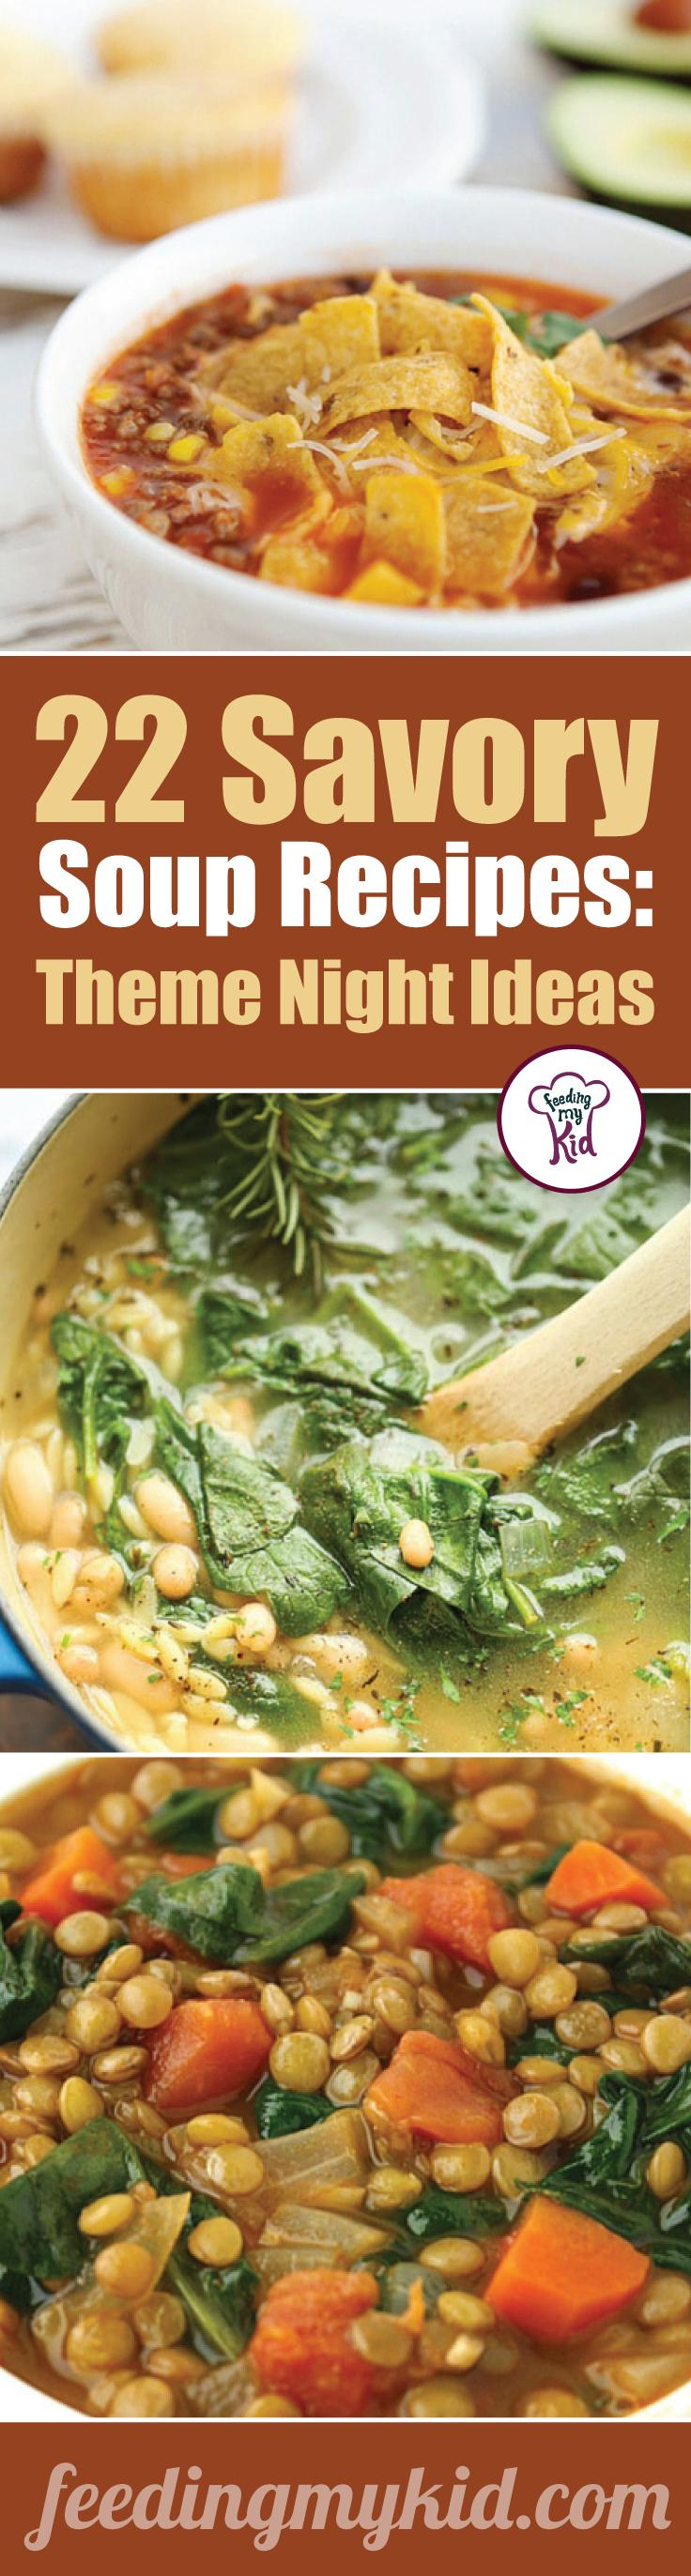 You'll want to share this! These soup recipes are warm and delicious and will make the perfect meal for any occasion. Feeding My Kid is a great website for parents, filled with all the information you need about how to raise your kids, from healthy tips to nutritious recipes. #soup #mealtime #themenight